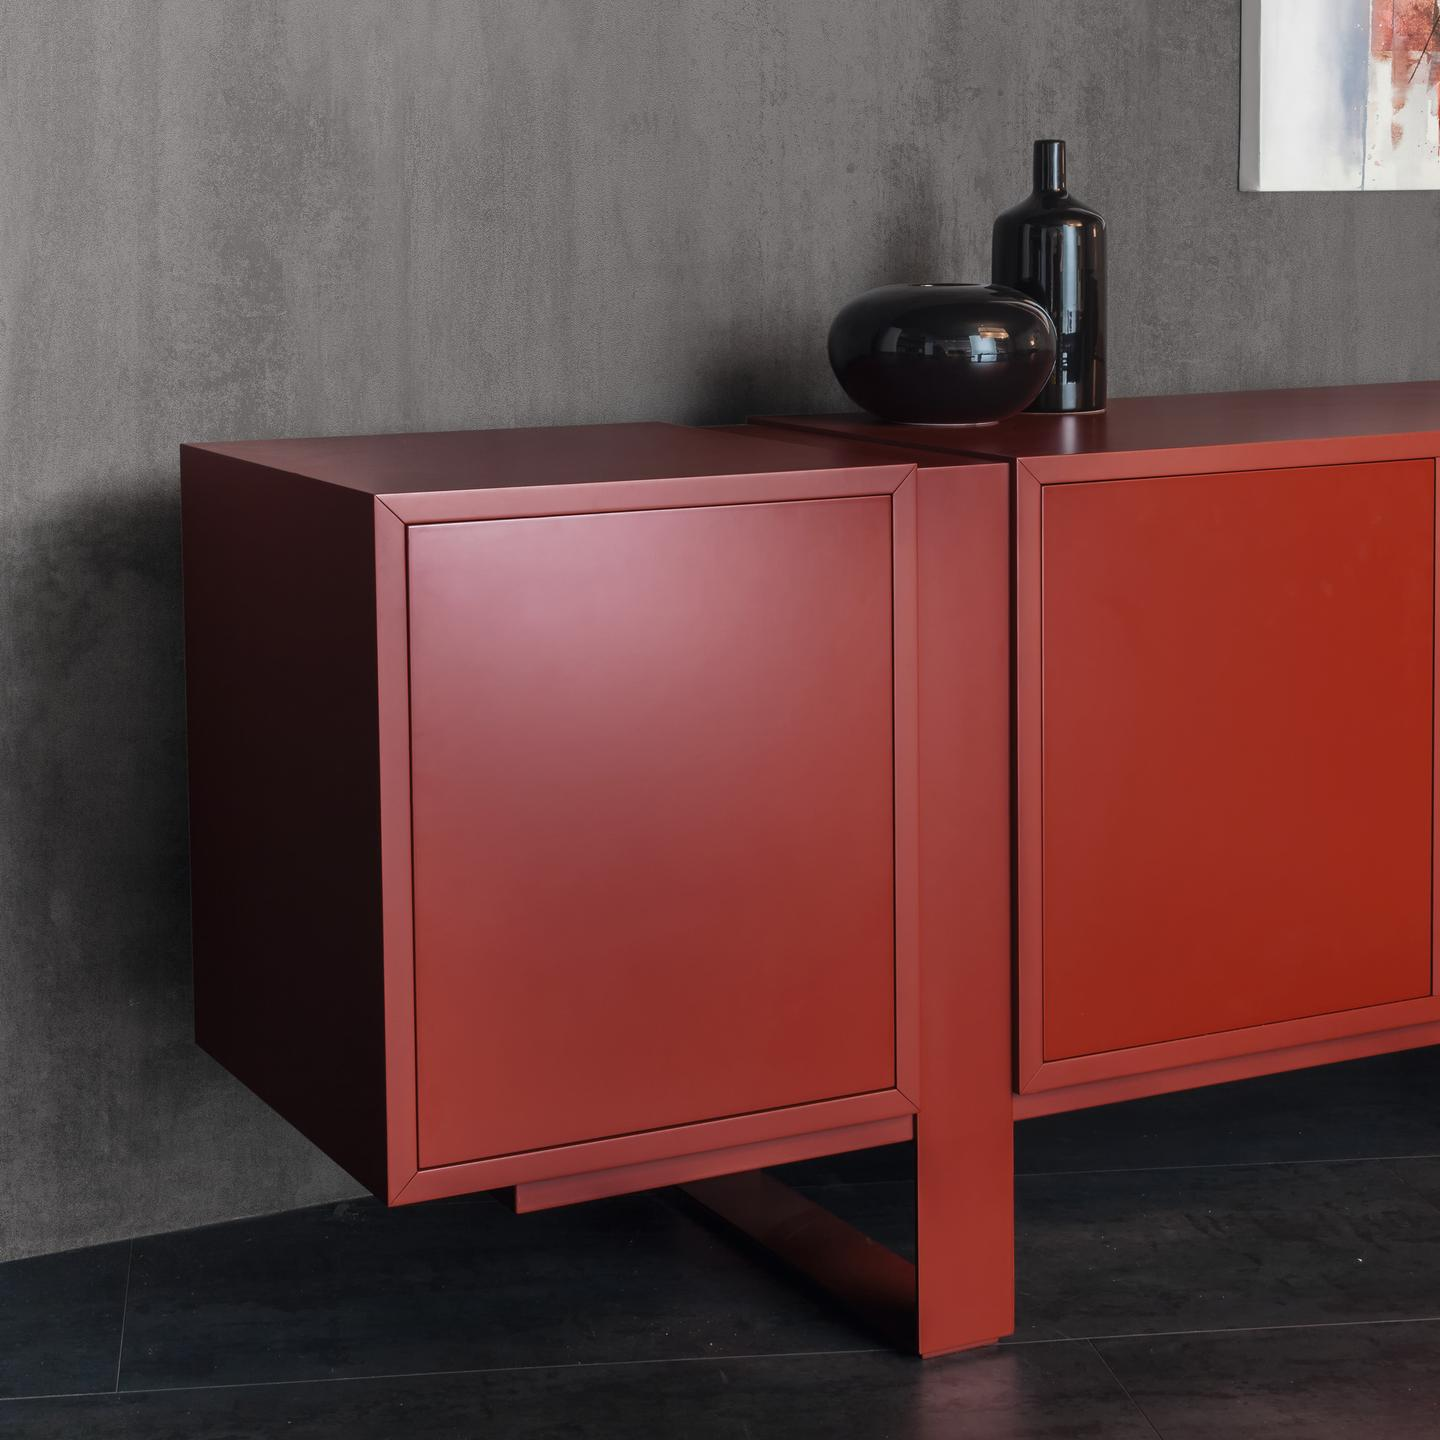 Sideboard in 20216 Bordeaux